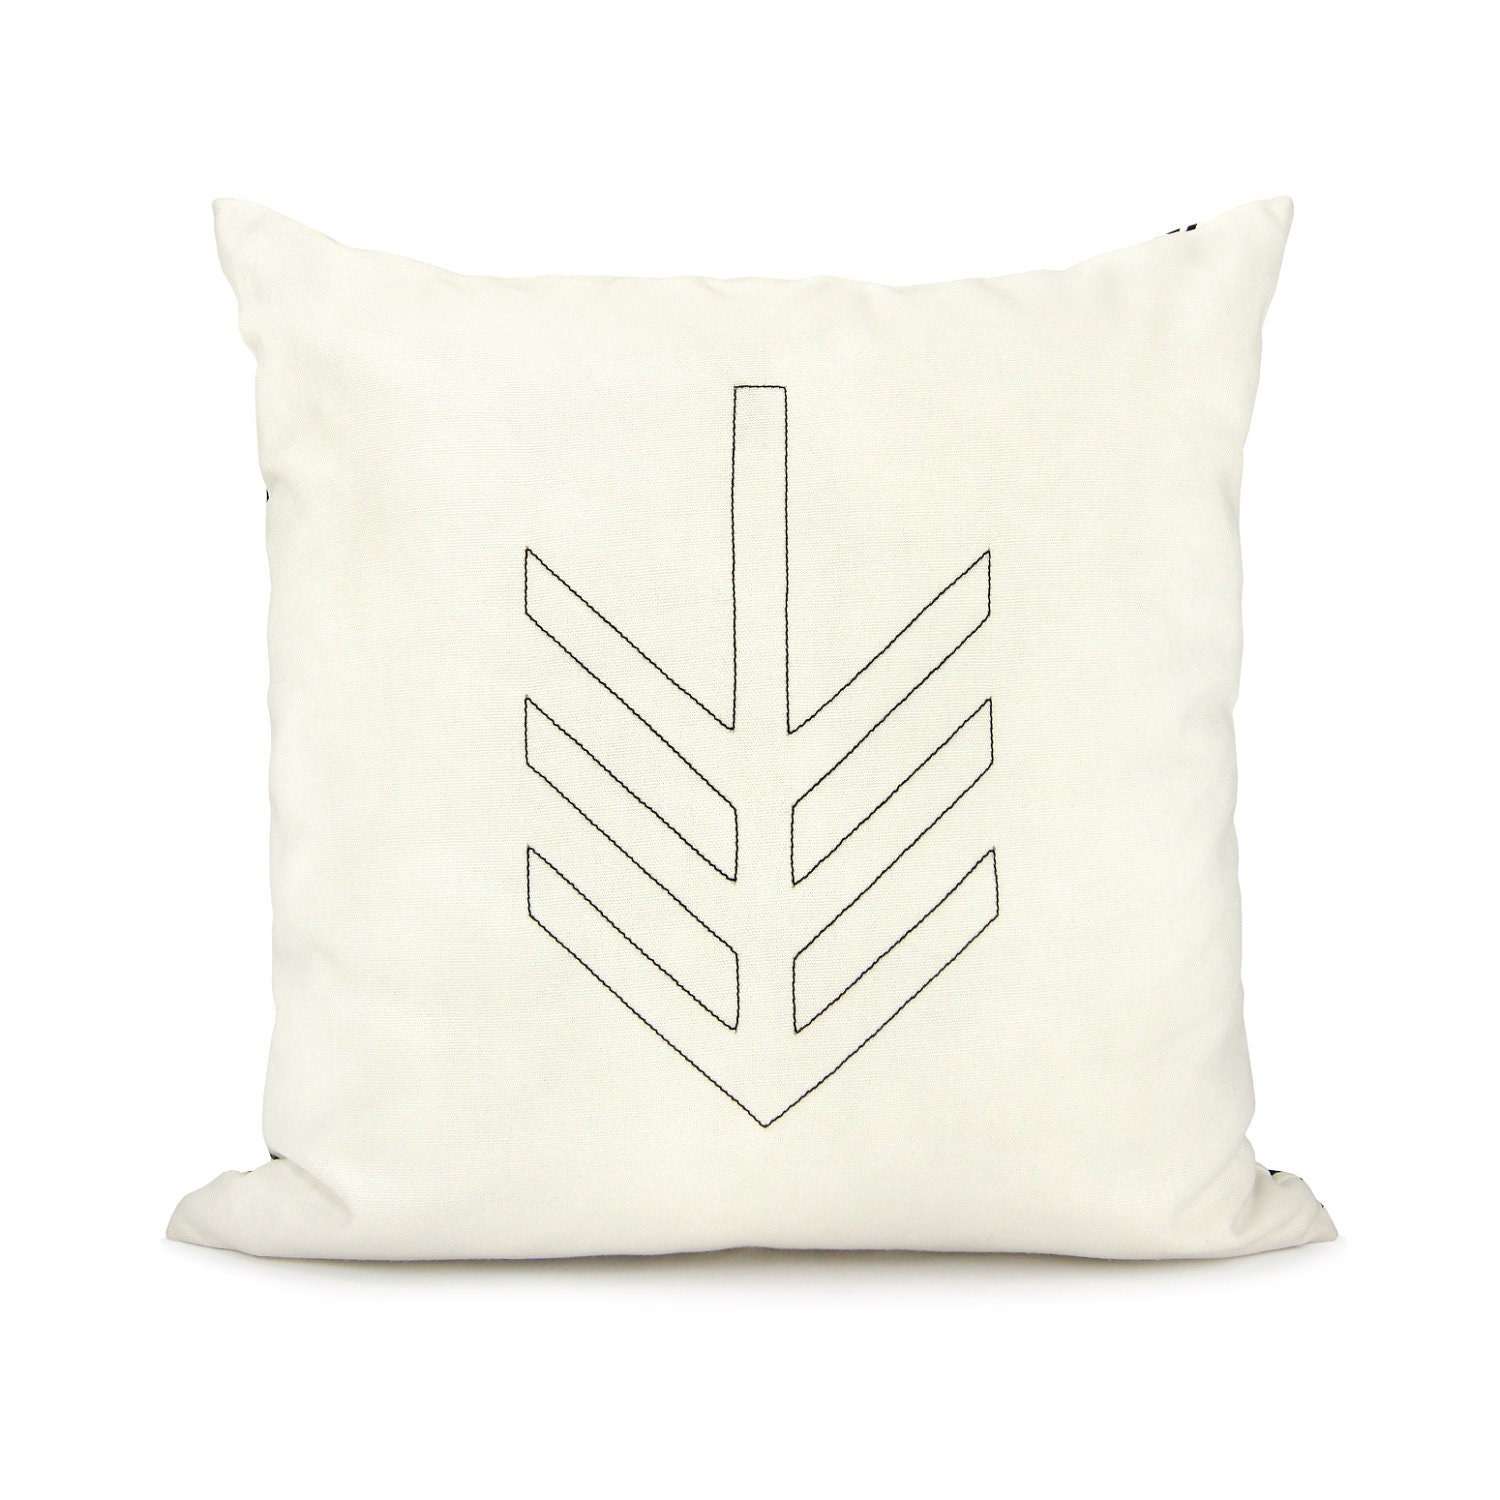 Geometric decorative pillow cover - Black arrow shape on off white canvas and geometric owl print back - 18x18 accent pillow cover, CIJ sale - ClassicByNature